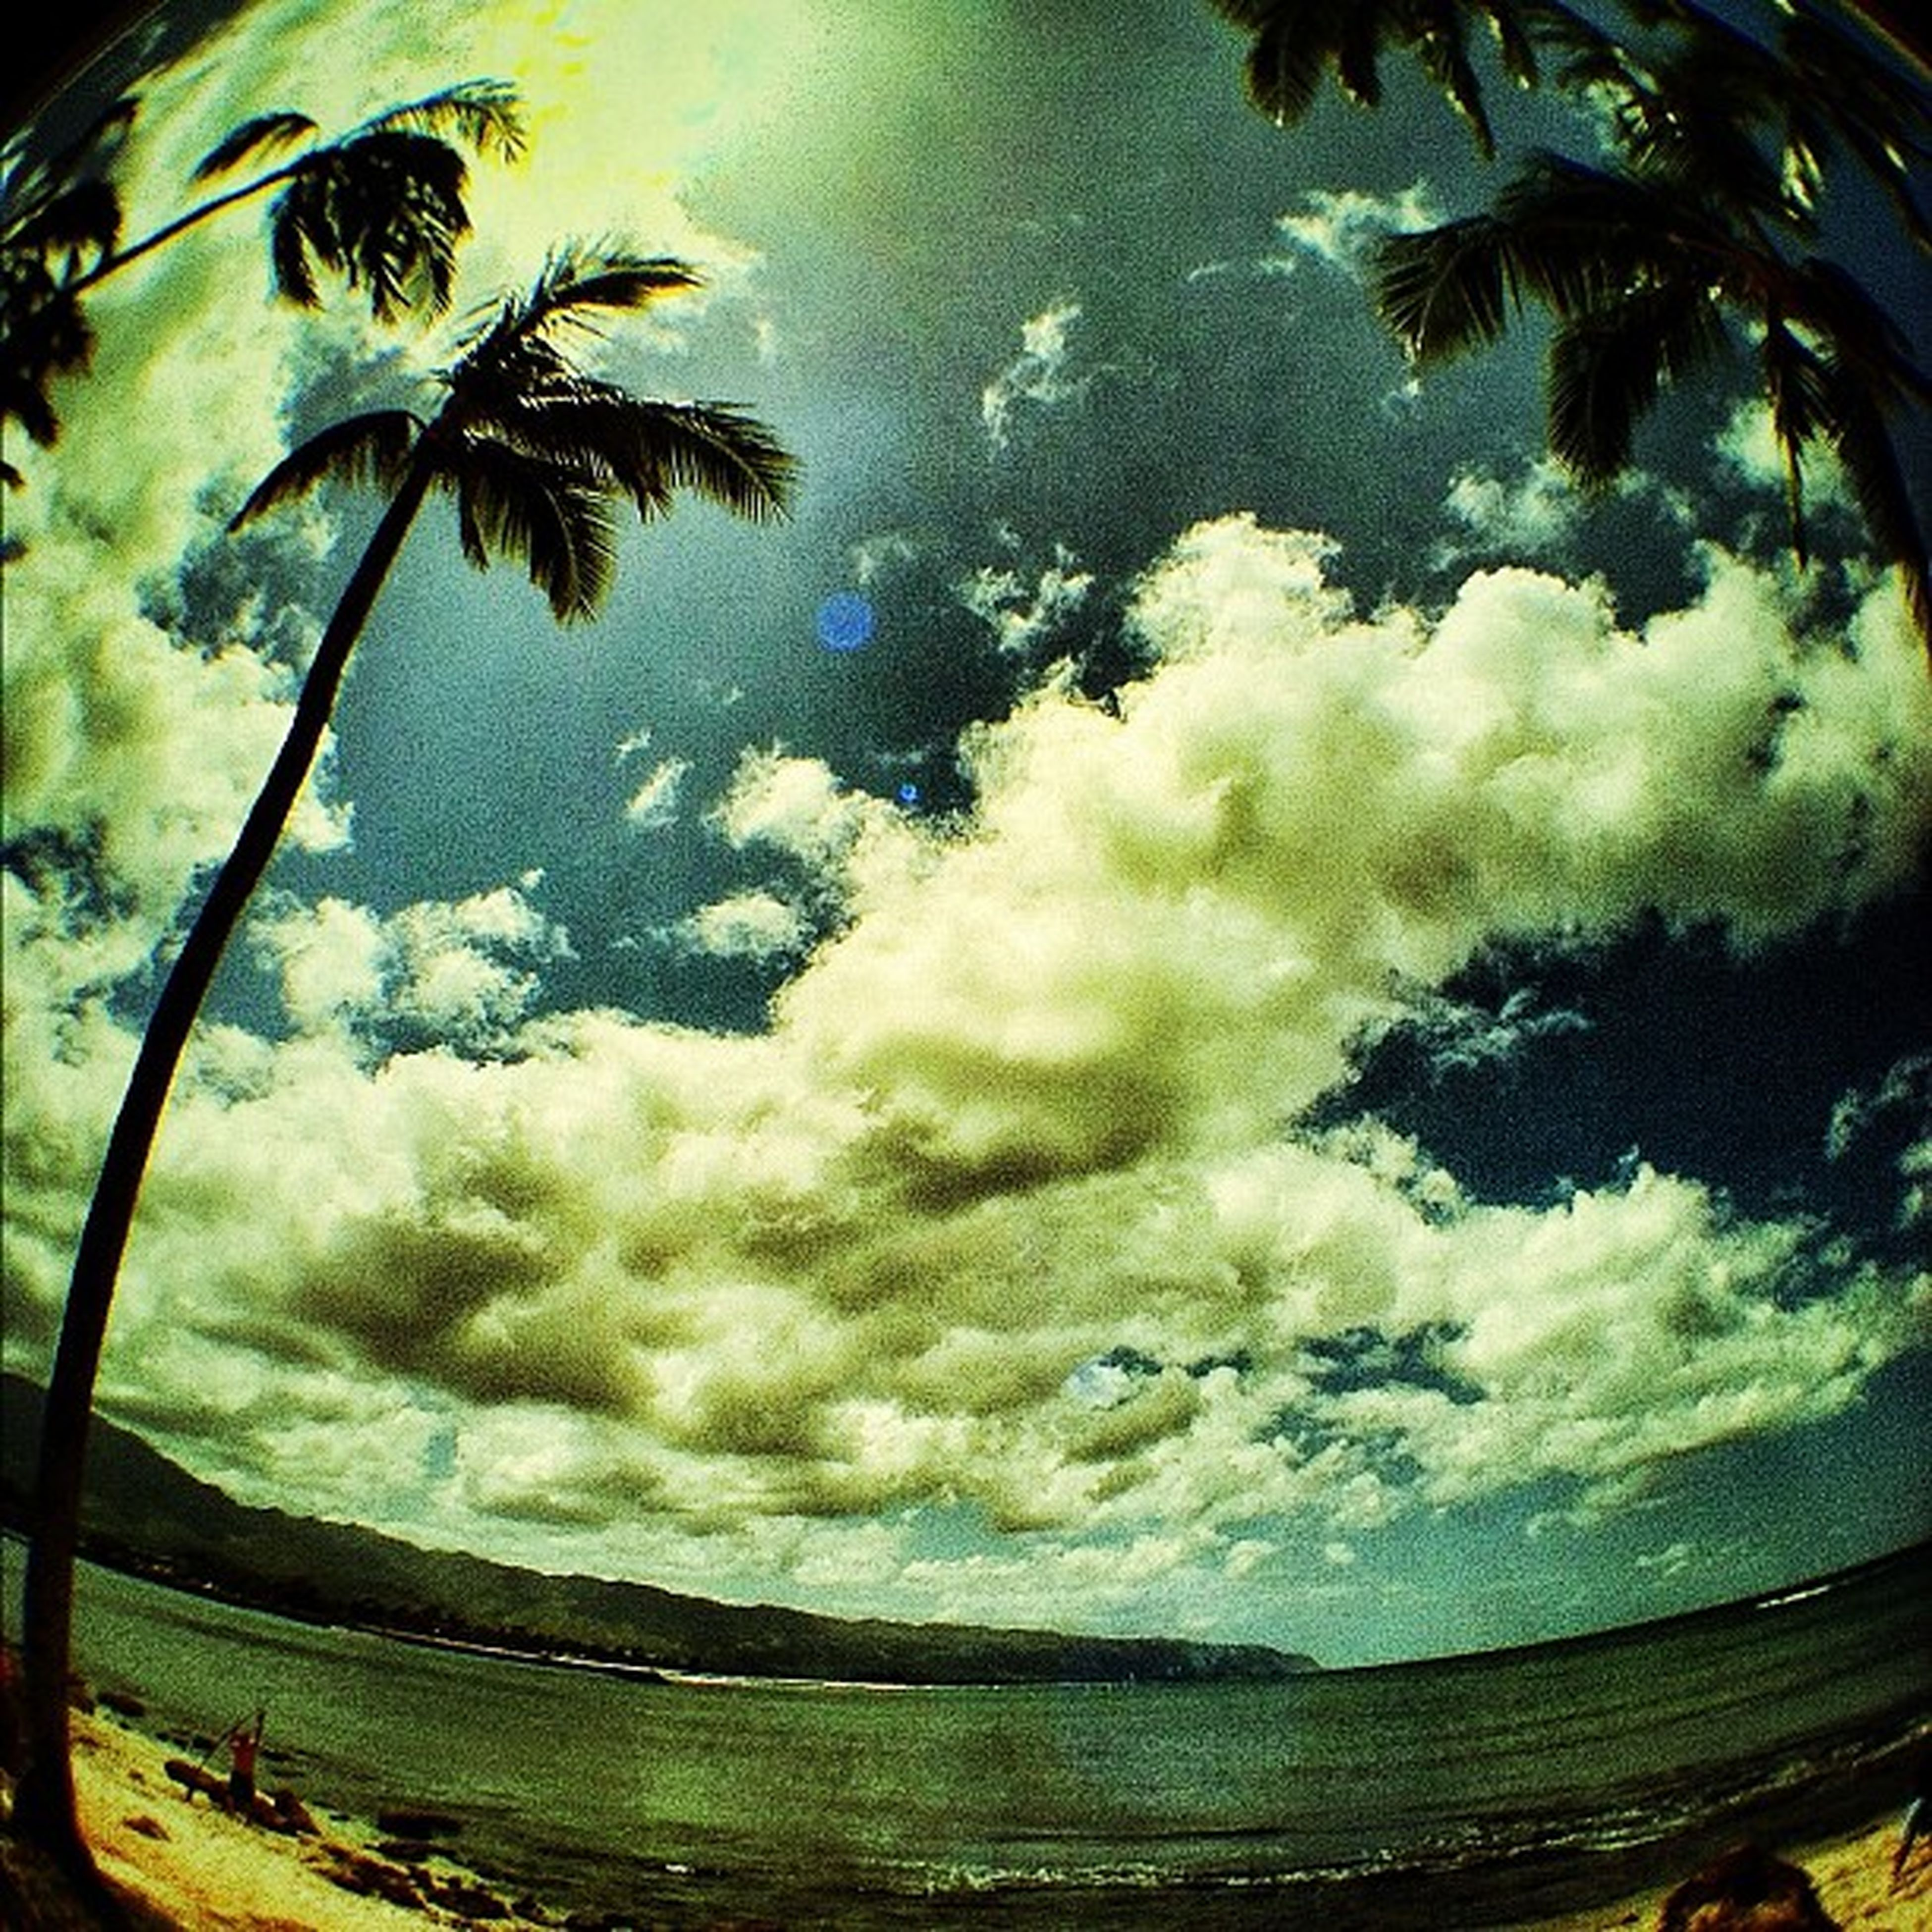 sky, cloud - sky, water, tree, palm tree, cloudy, beauty in nature, nature, tranquility, scenics, cloud, reflection, growth, tranquil scene, leaf, sea, green color, day, outdoors, no people